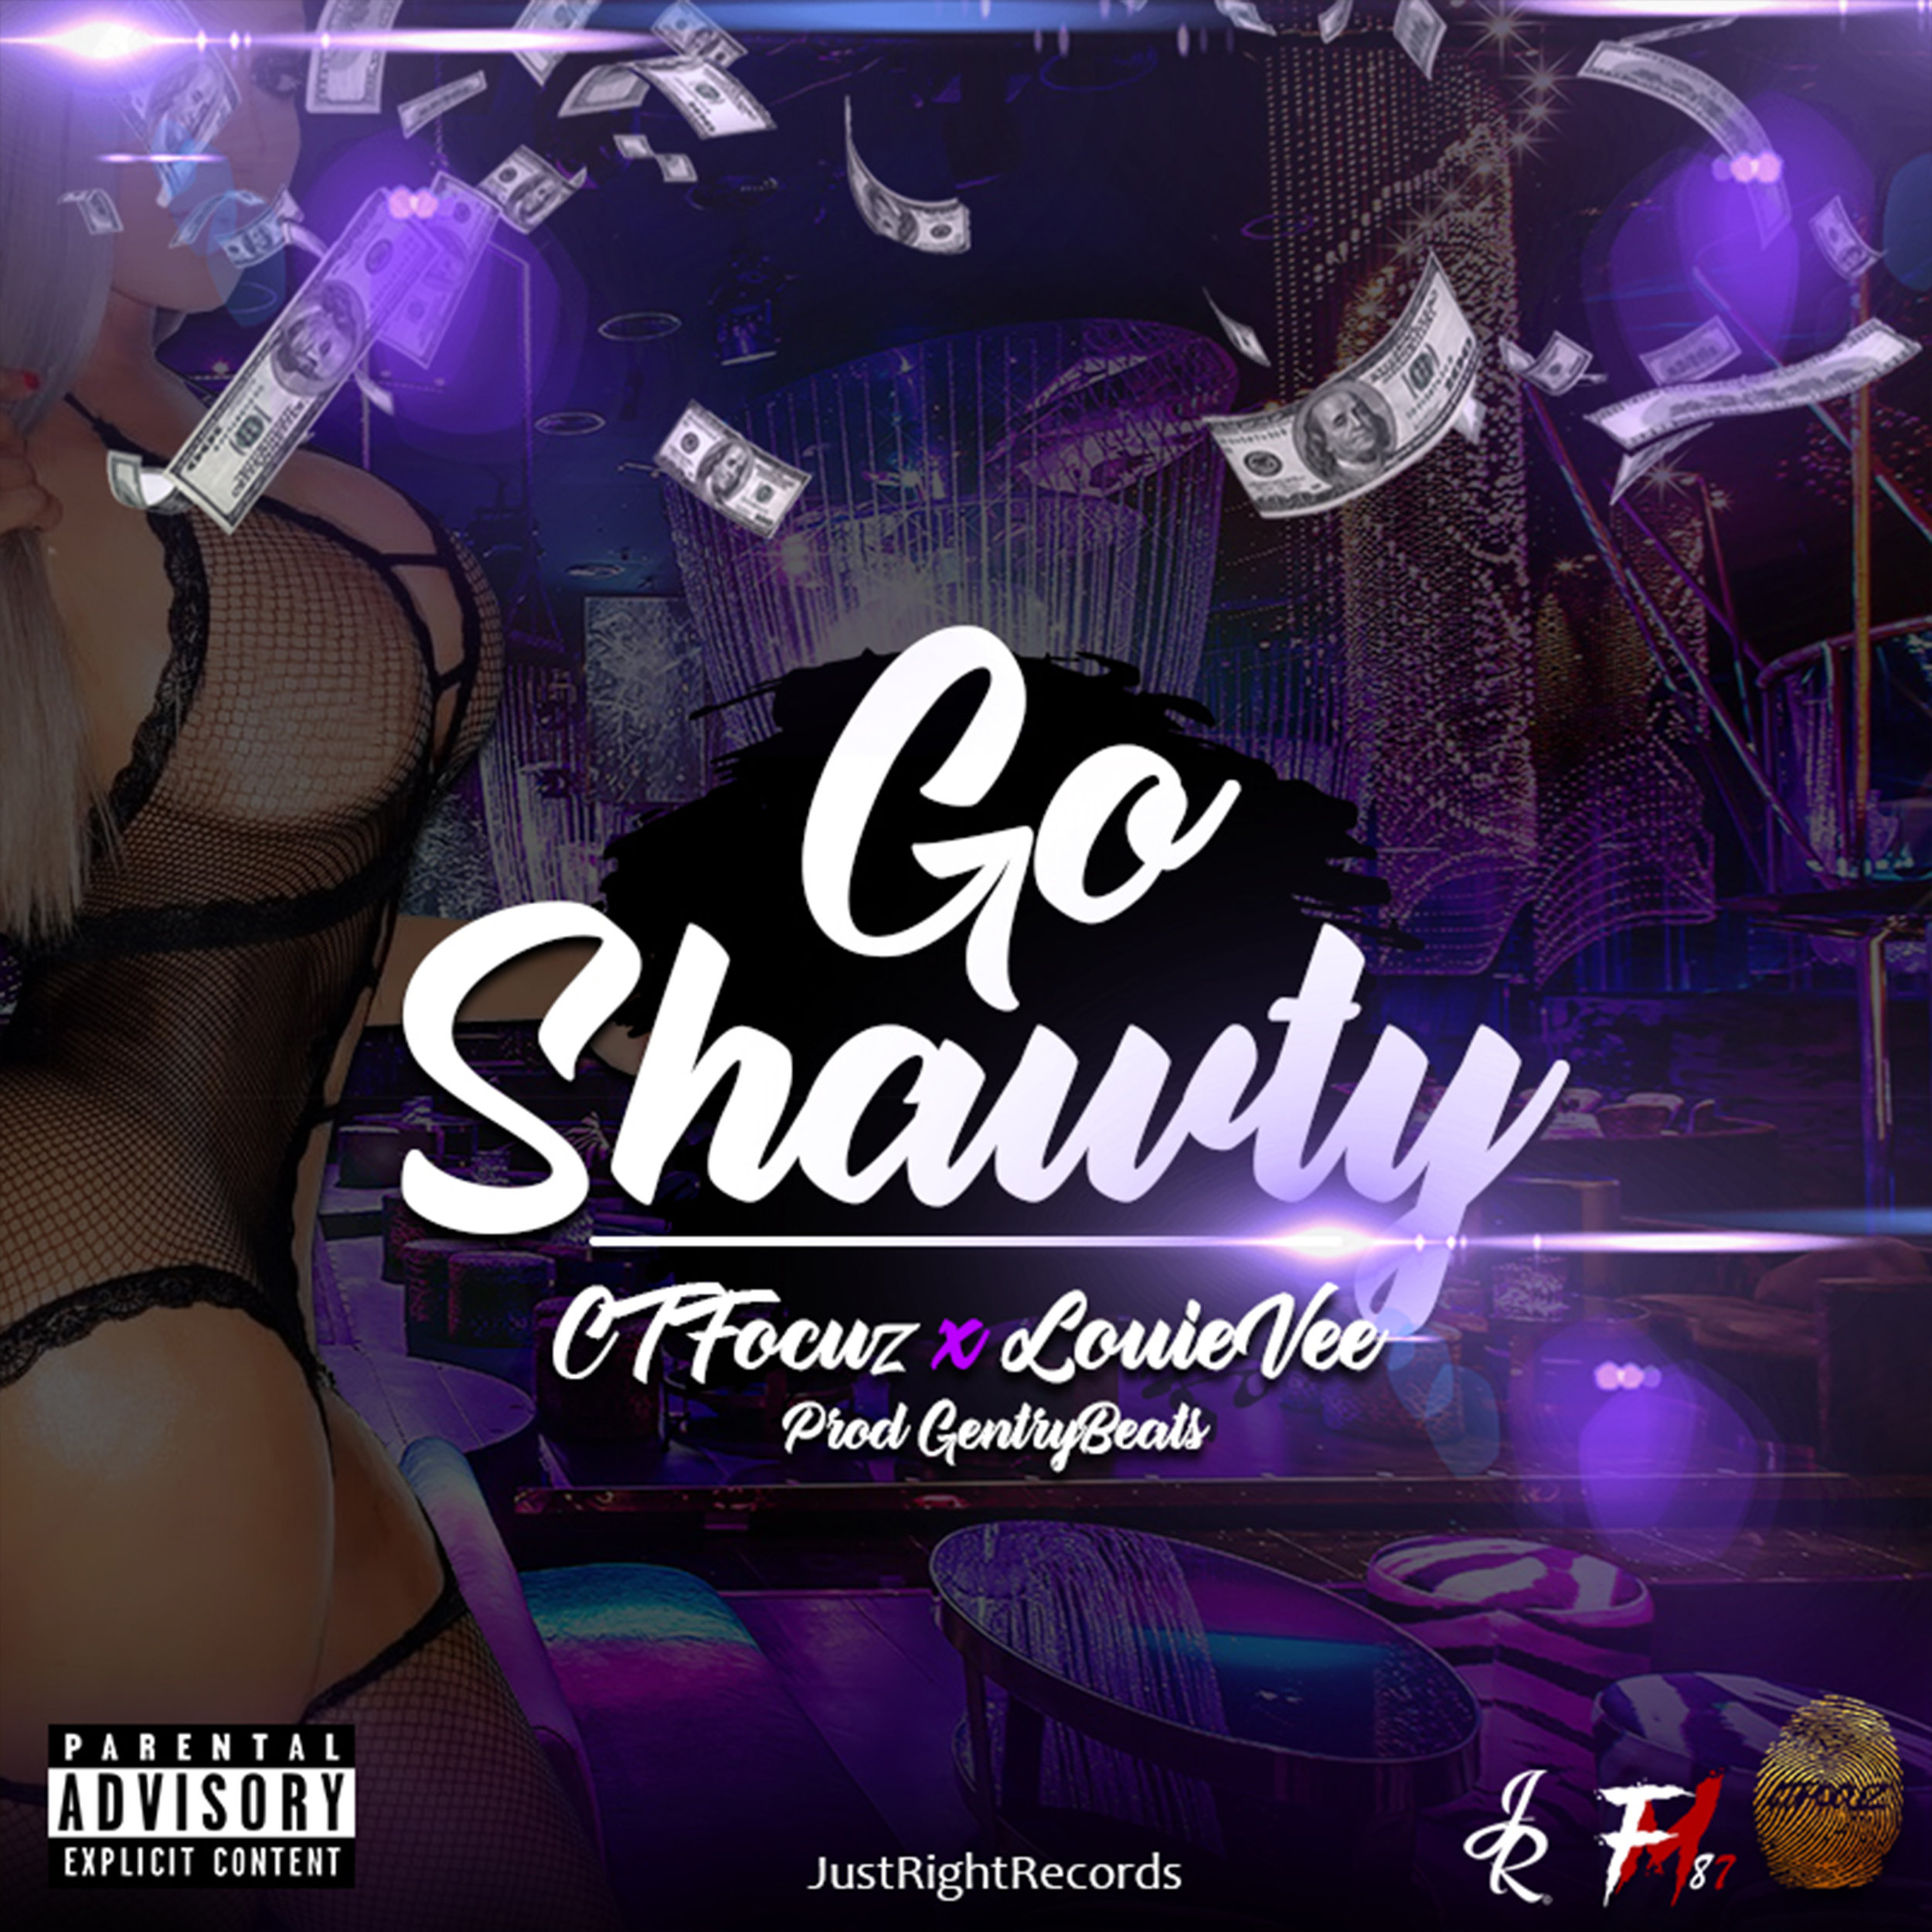 out now available on all digital platforms